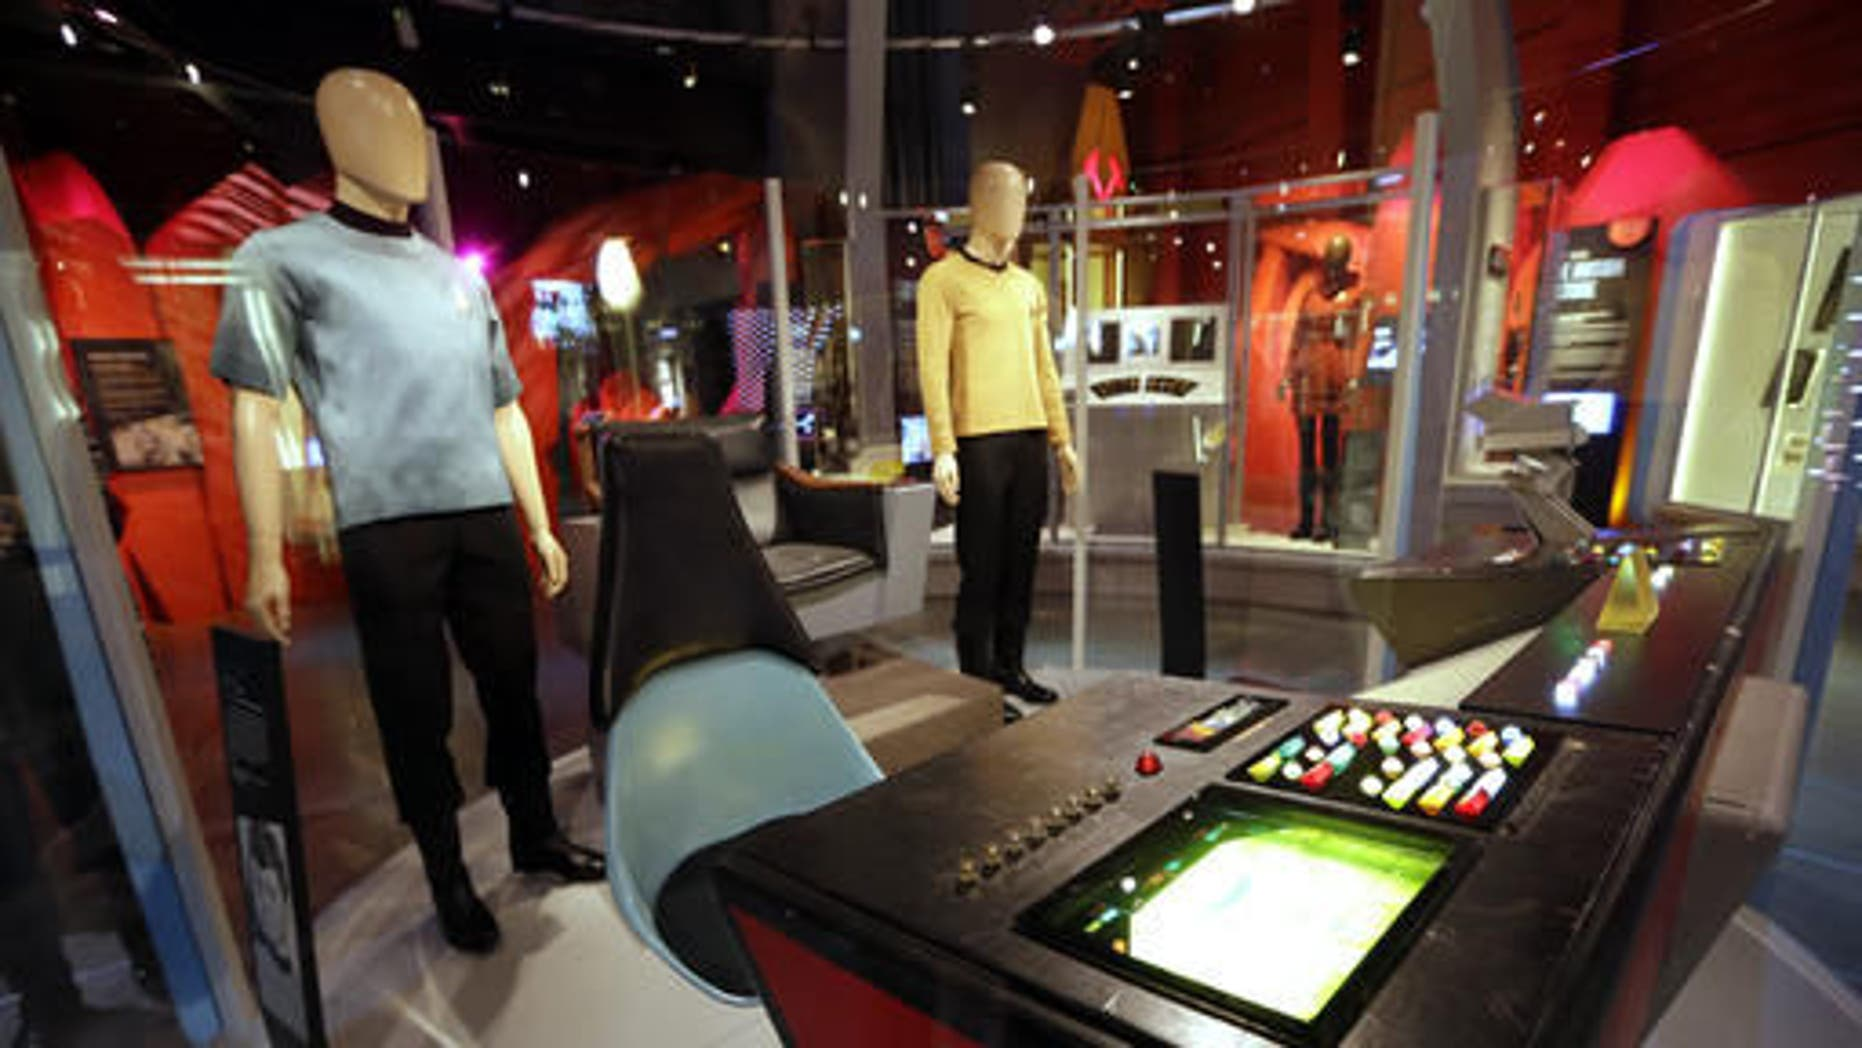 """Costumes and pieces of the set of the """"Star Trek"""" TV series are displayed in the exhibit, """"Star Trek: Exploring New Worlds,"""" as part of a 50th anniversary celebration of the TV show and films at the EMP Museum, in Seattle. The exhibit opens on Saturday."""